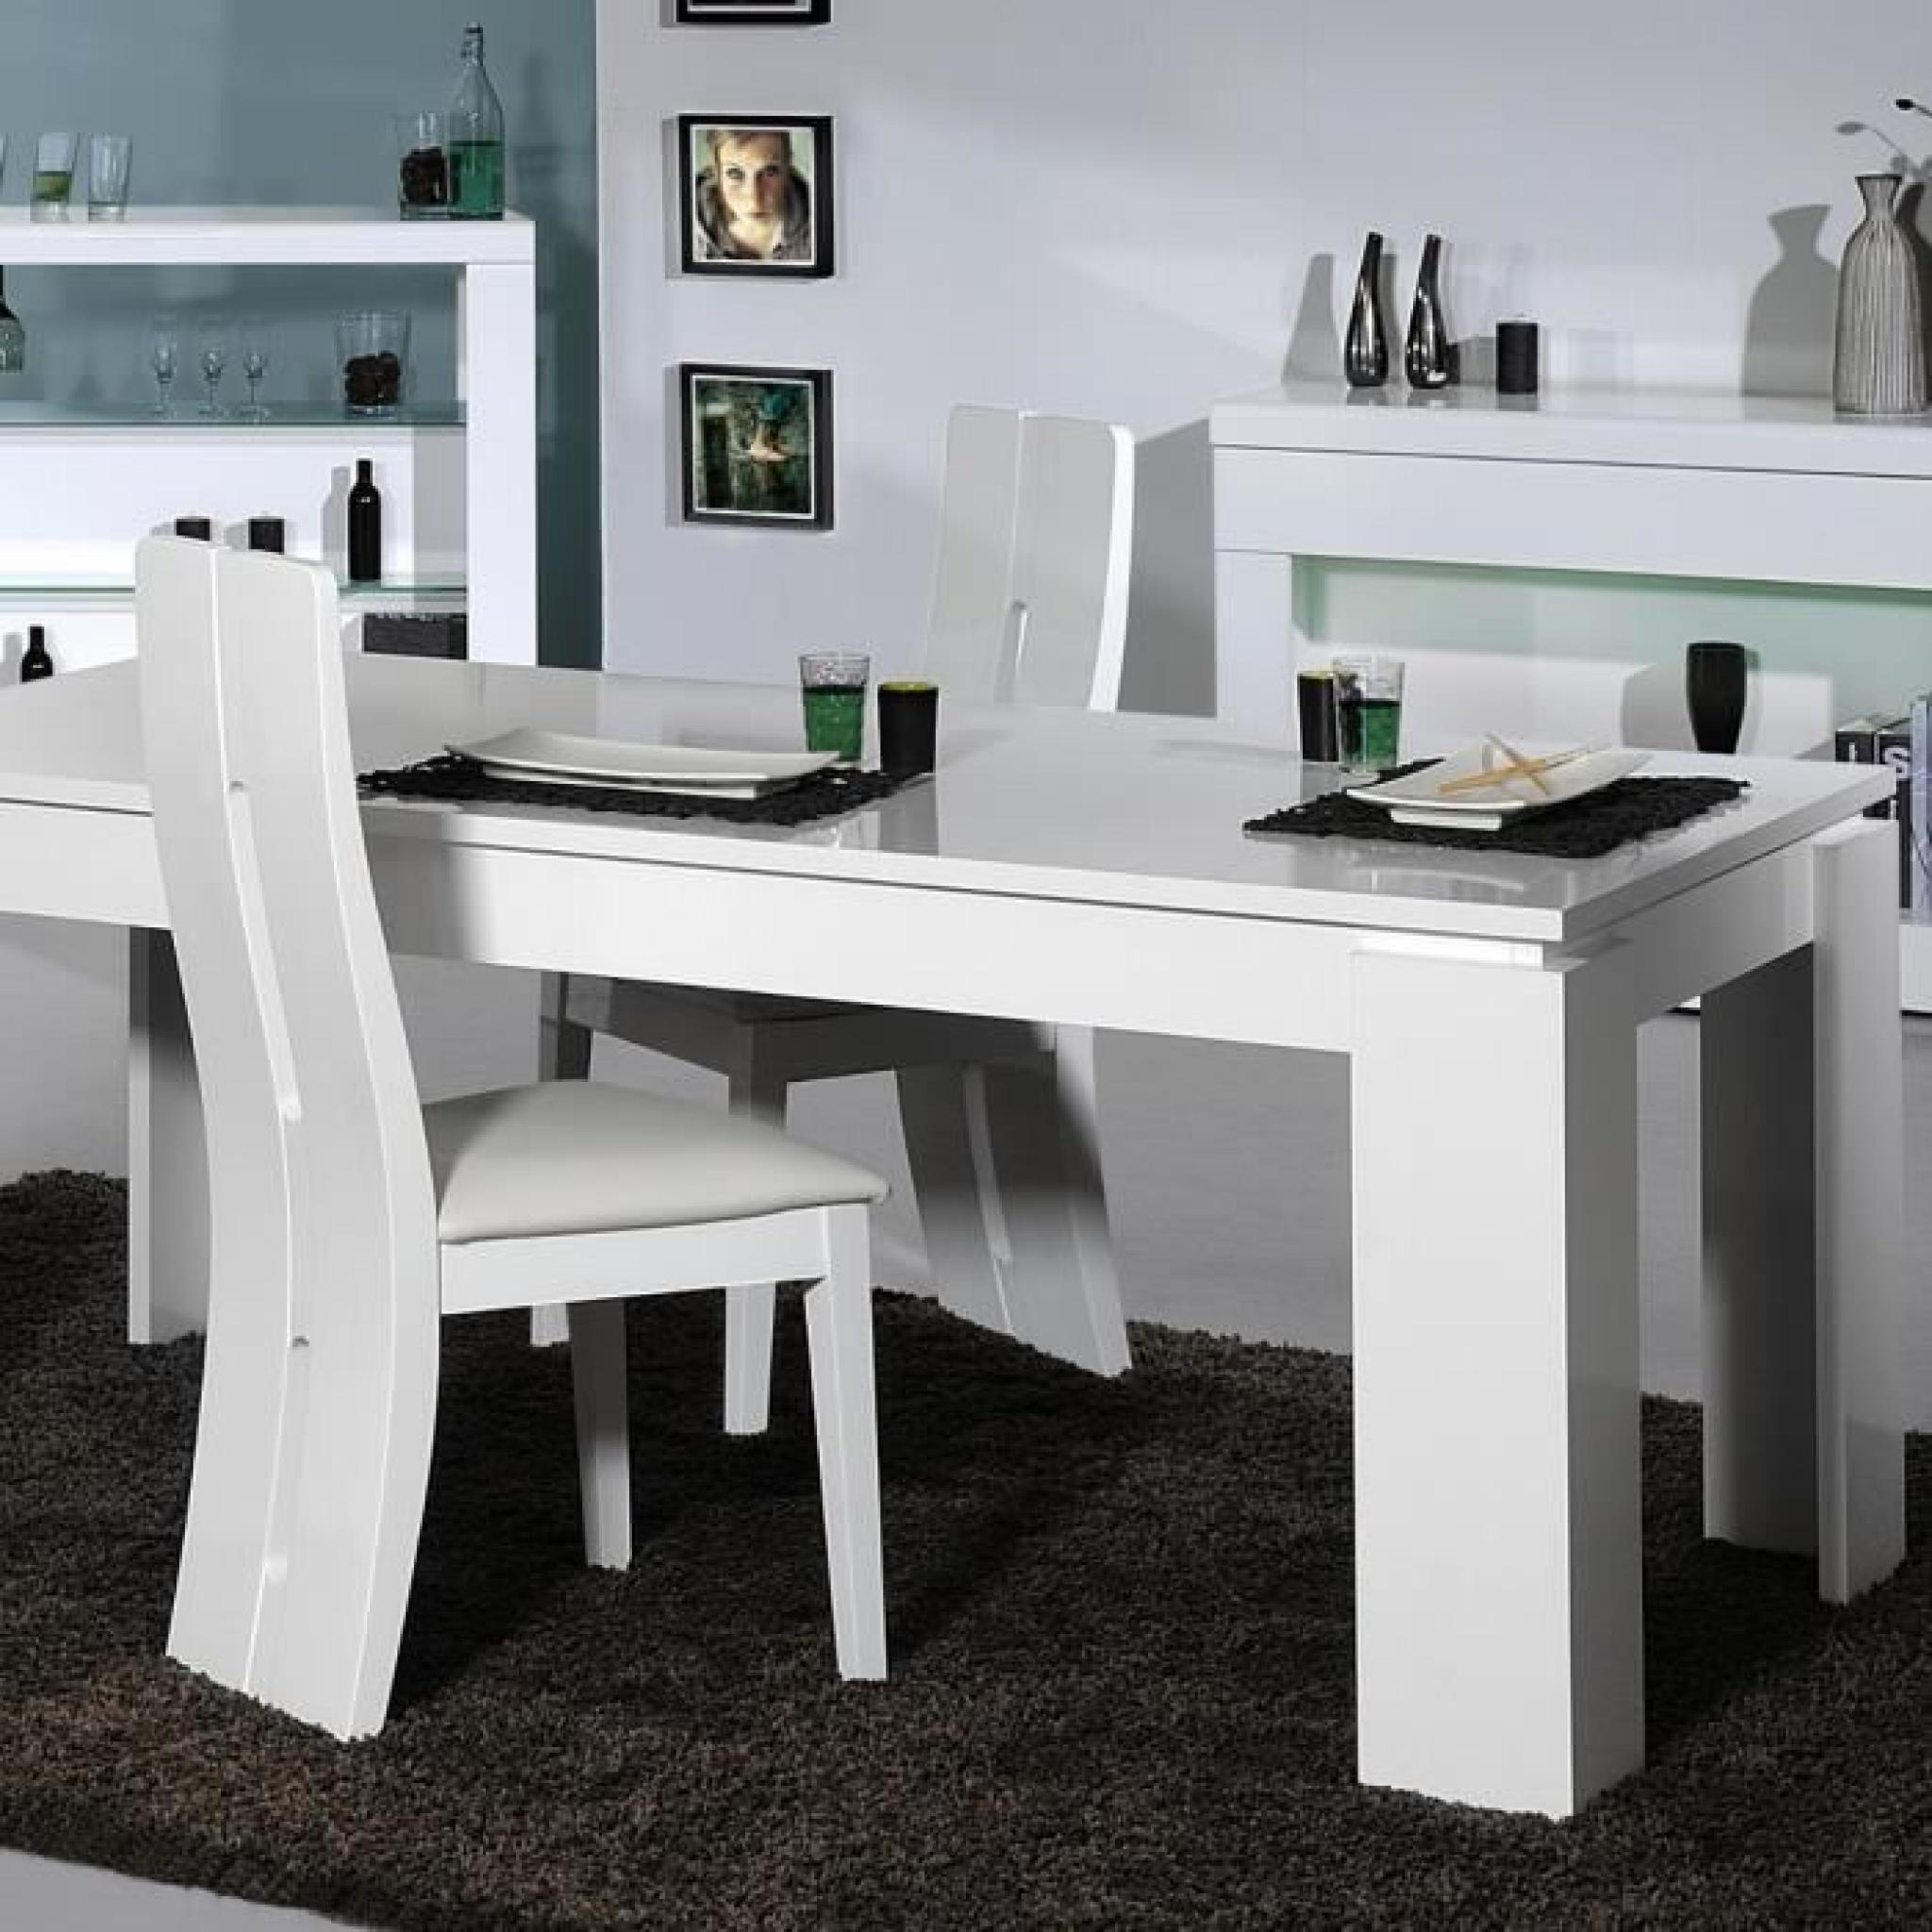 Table a manger et chaises pas cher maison design for Ensemble table chaise salle a manger